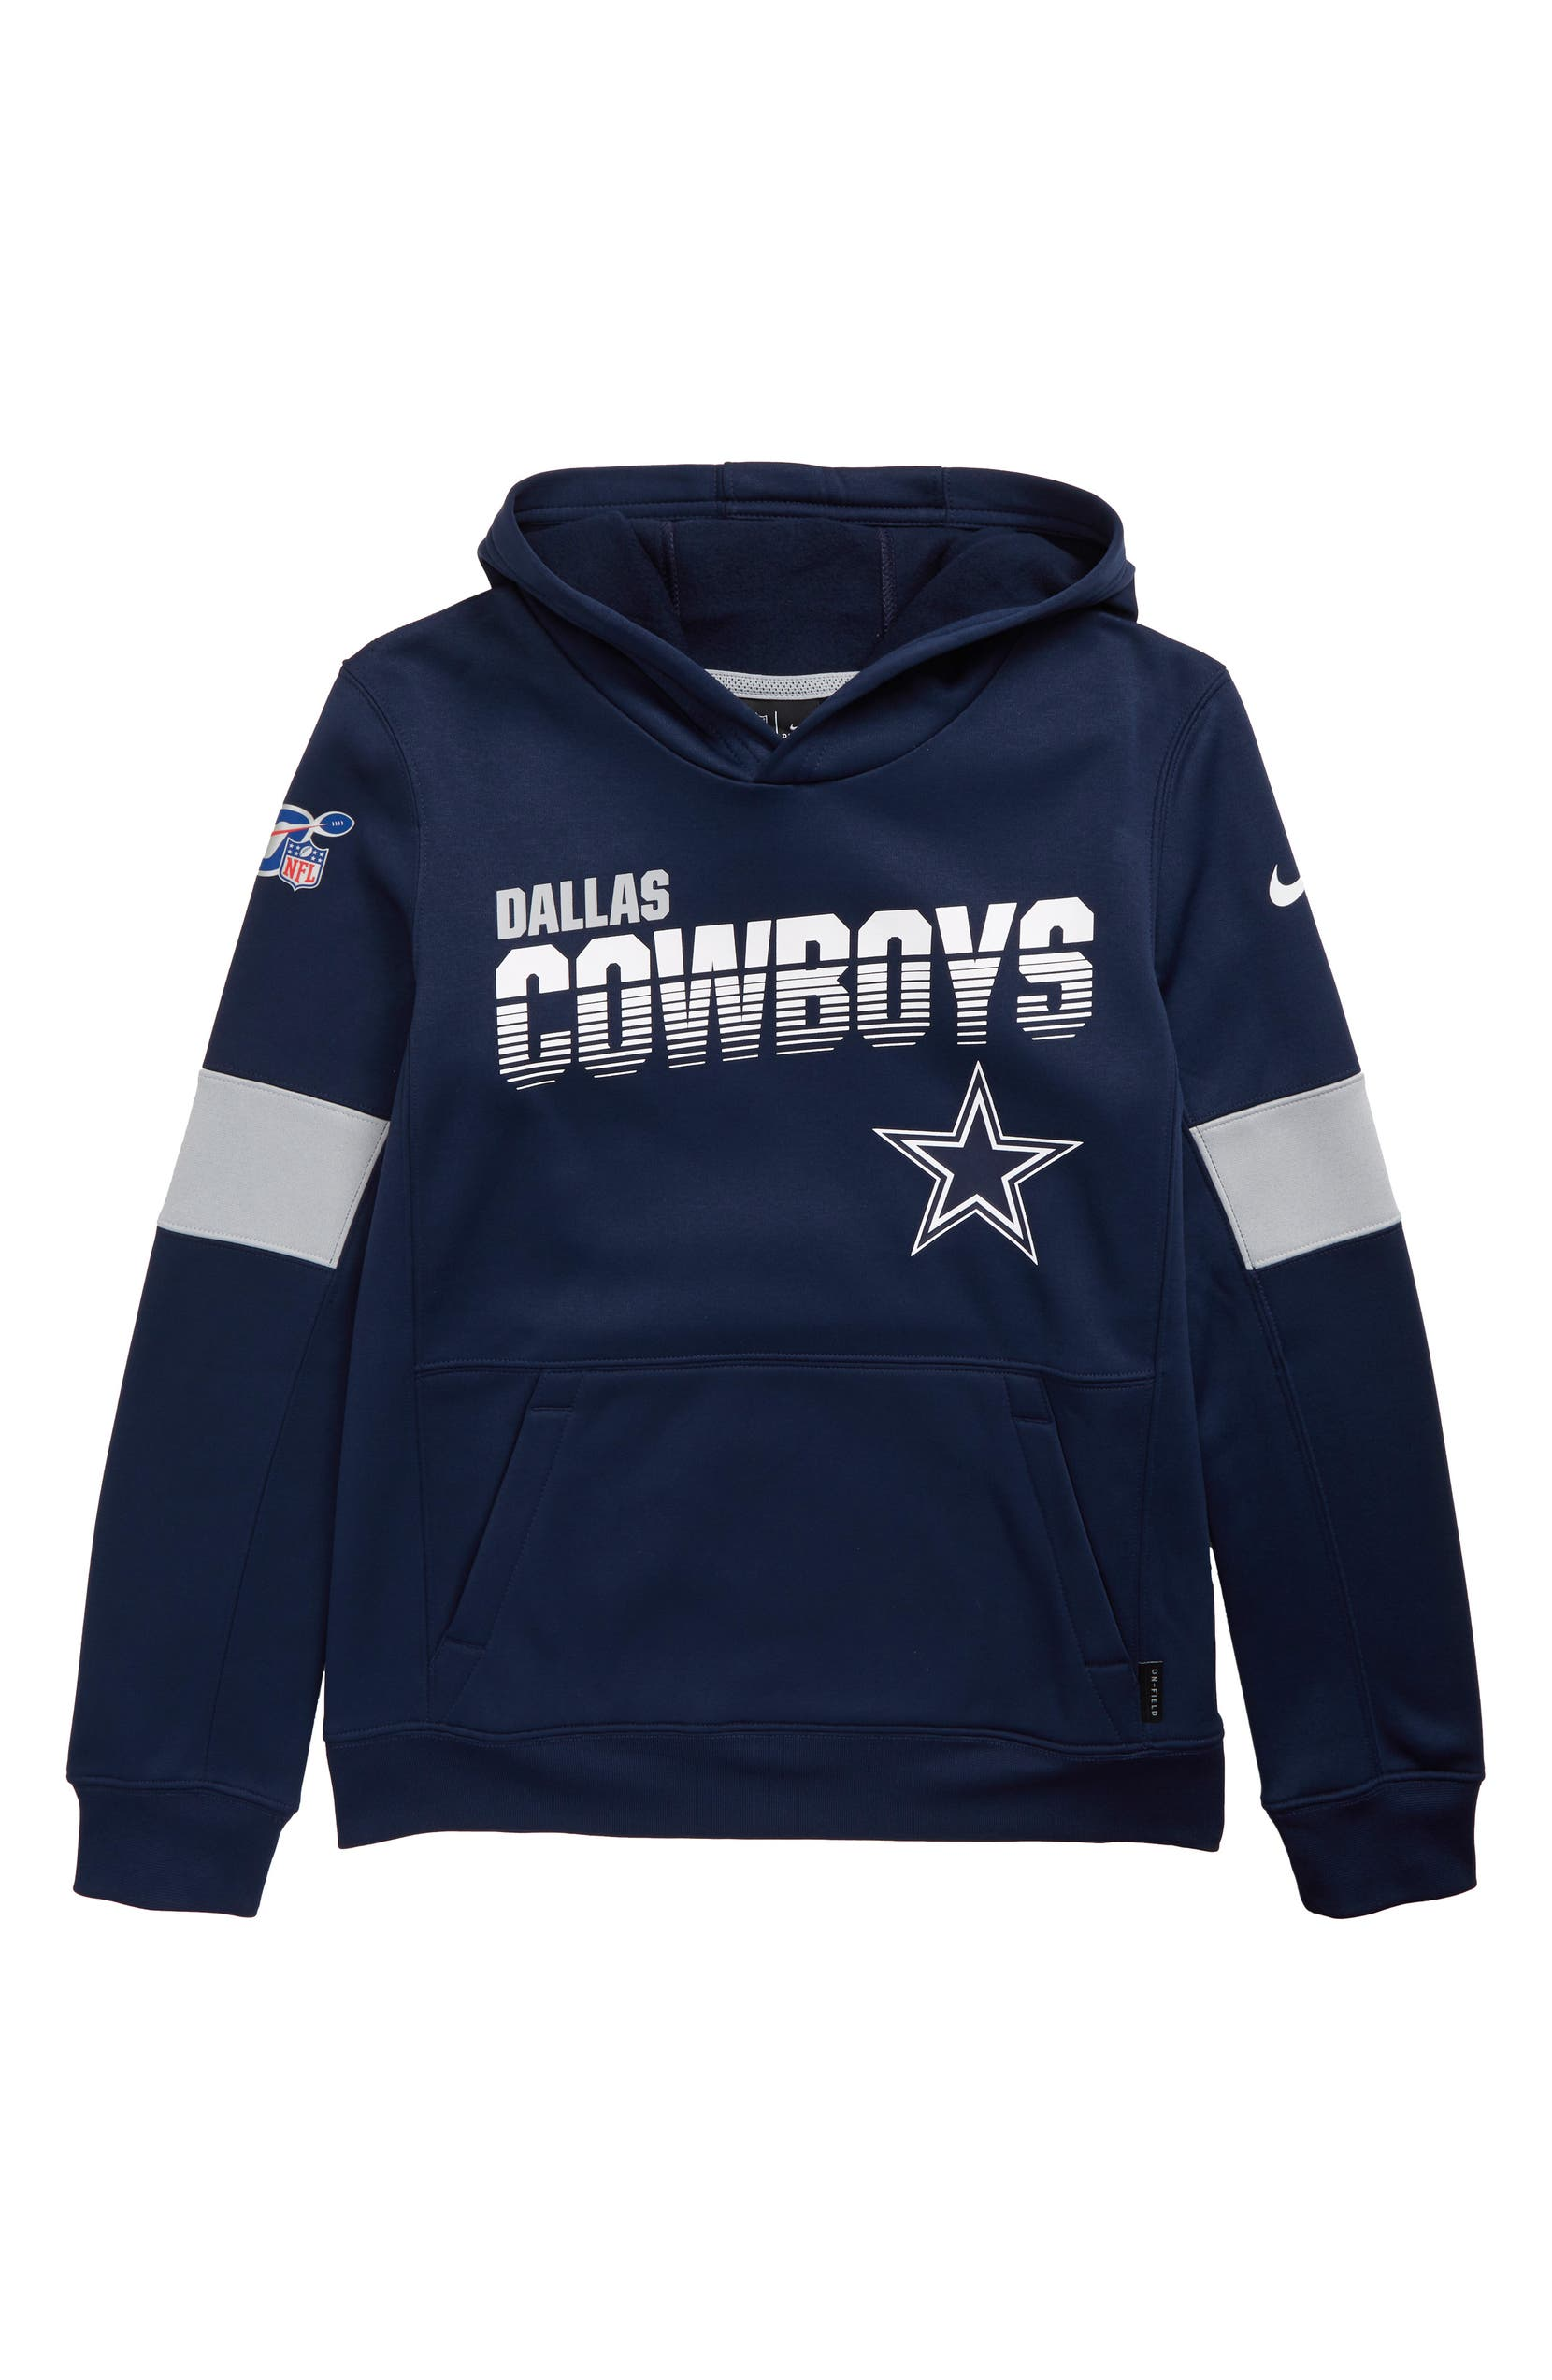 buy online 9ae09 57242 Nike NFL Logo Dallas Cowboys Therma Hoodie (Big Boys ...